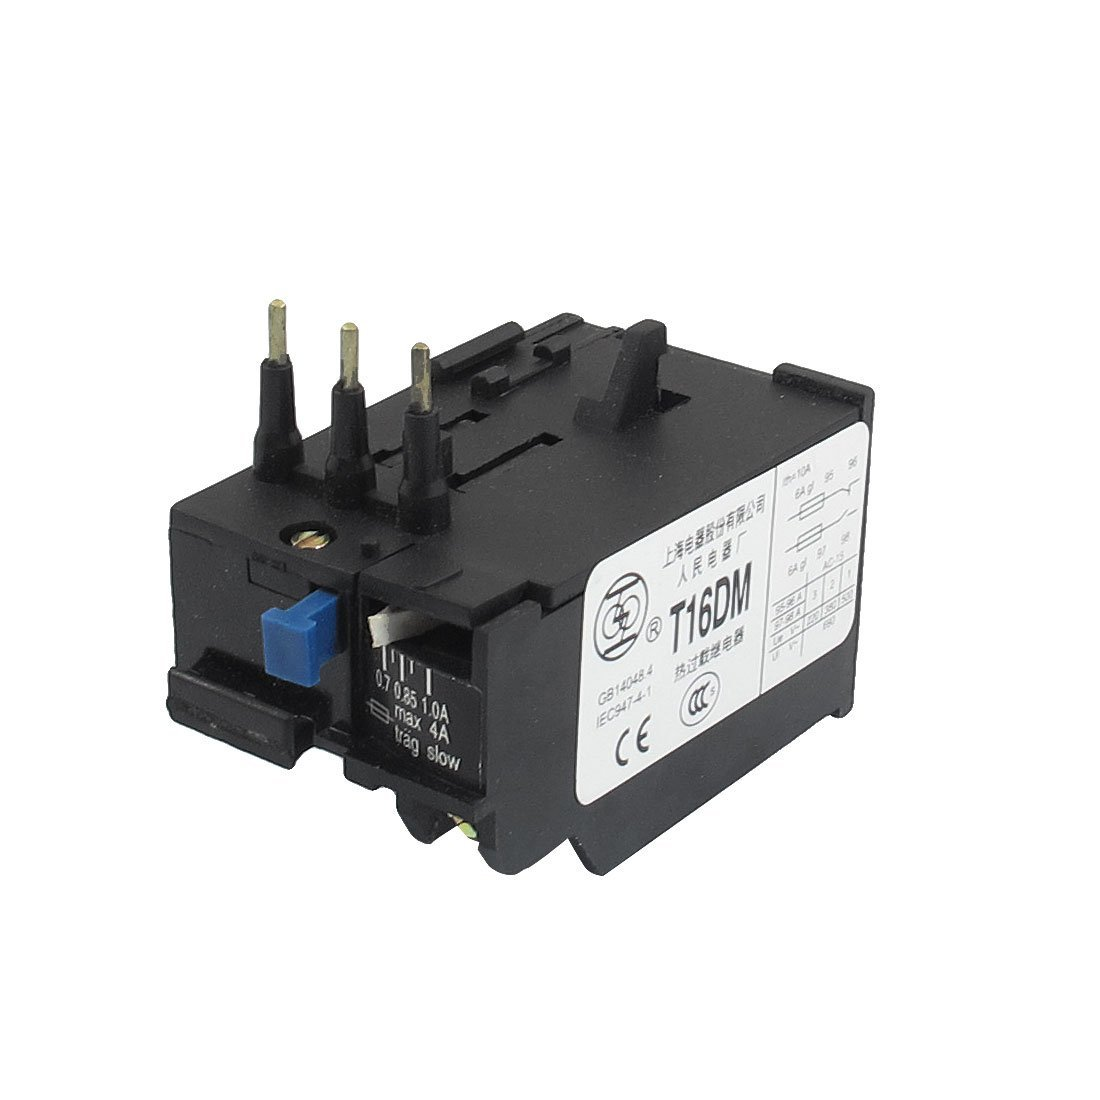 Buy Uxcell T16dm 3 Pole 07a 1a Current Range Motor Thermal Overload Relay 1no 1nc